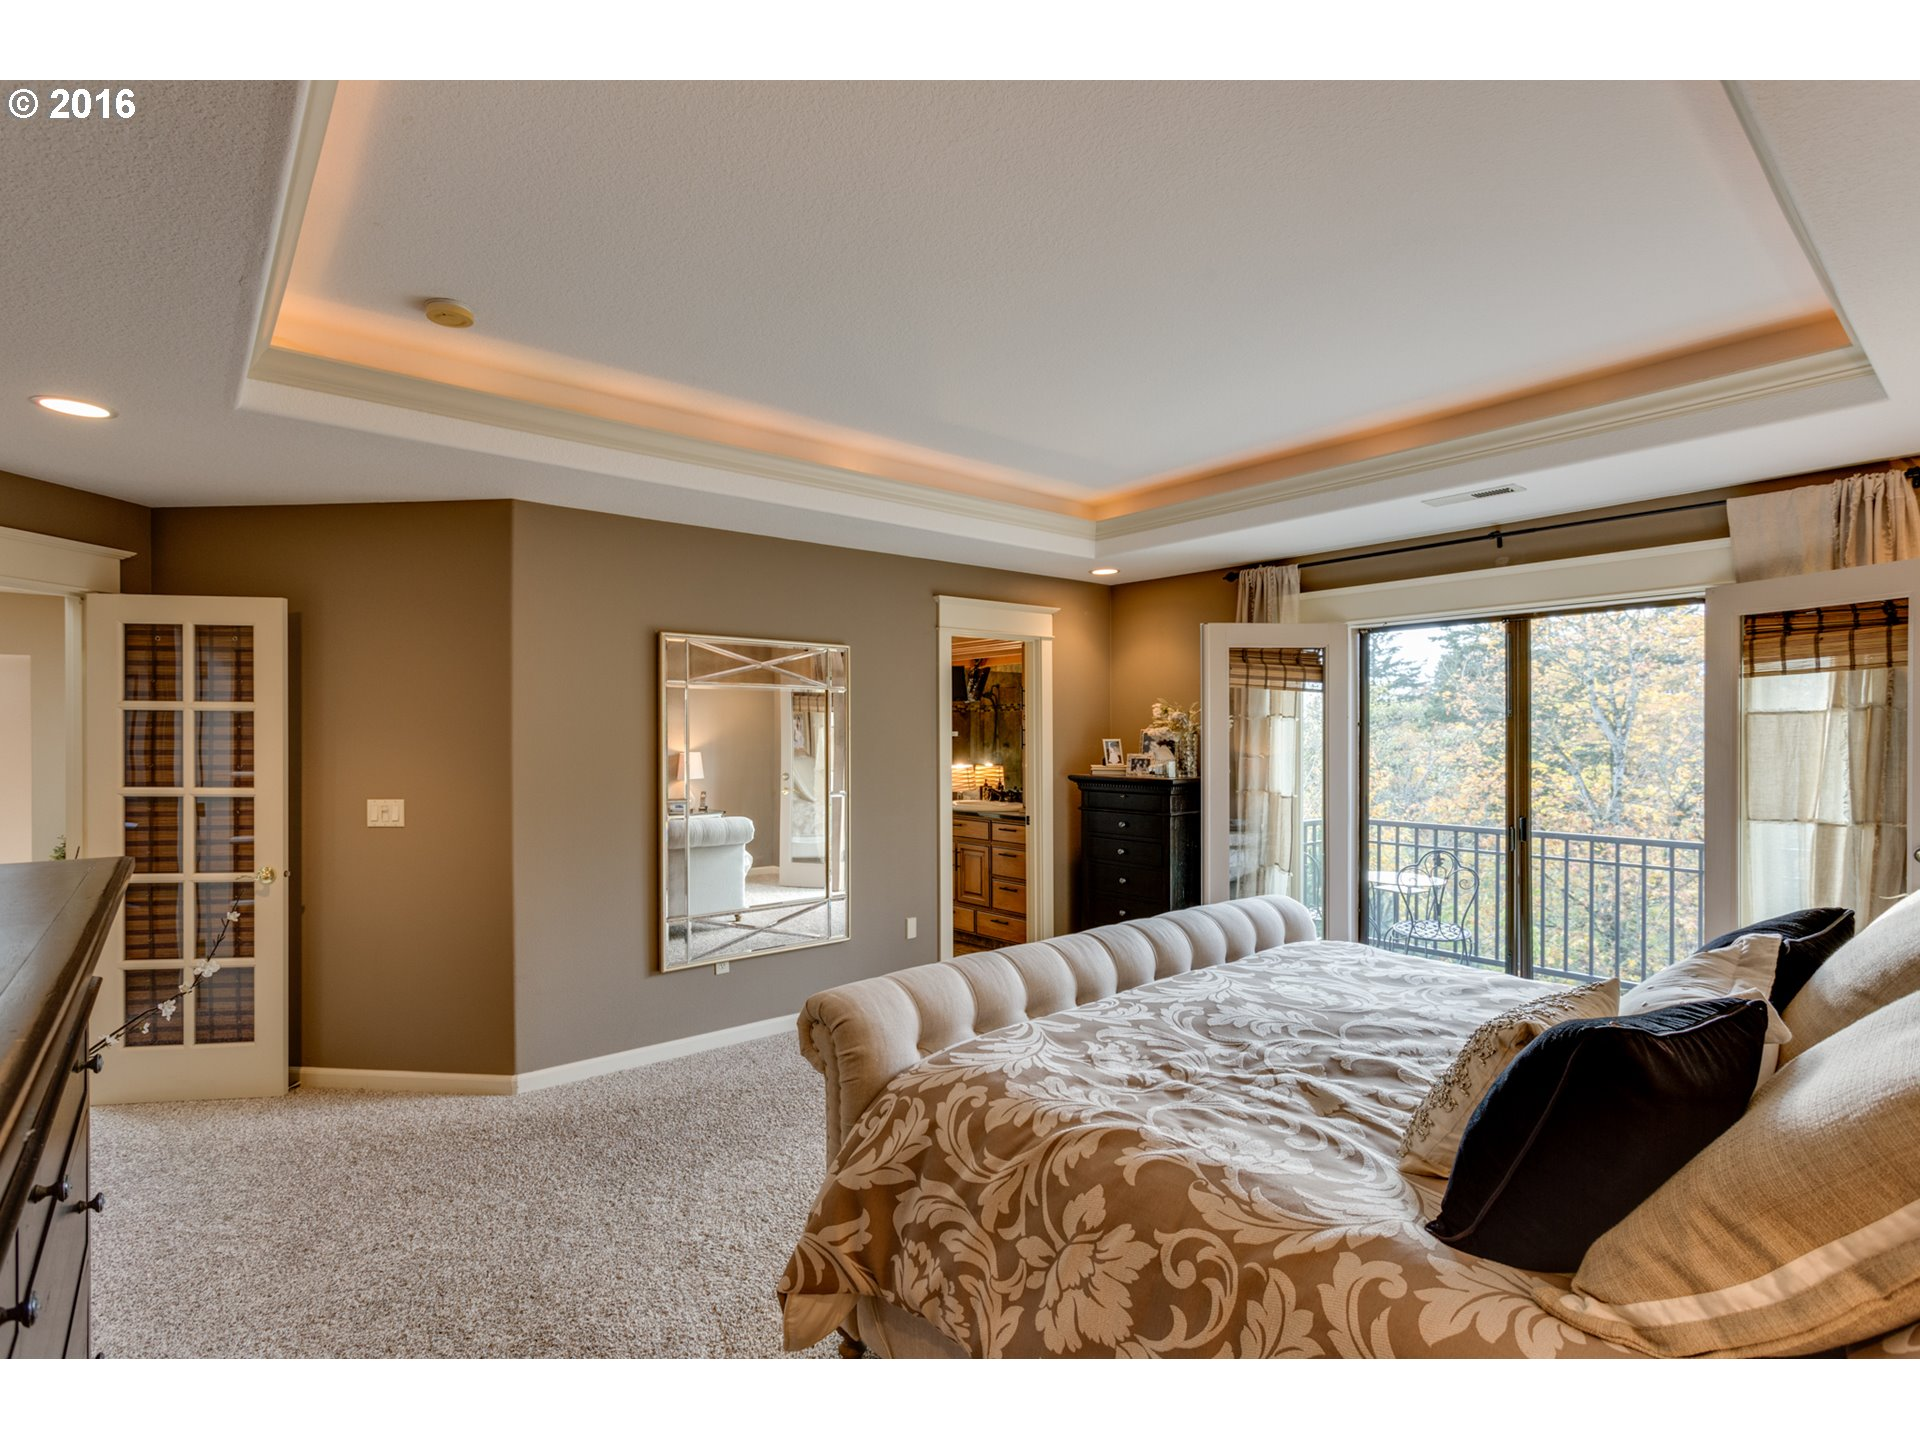 MASTER BEDROOM MATT MORRIS 360-773-7333